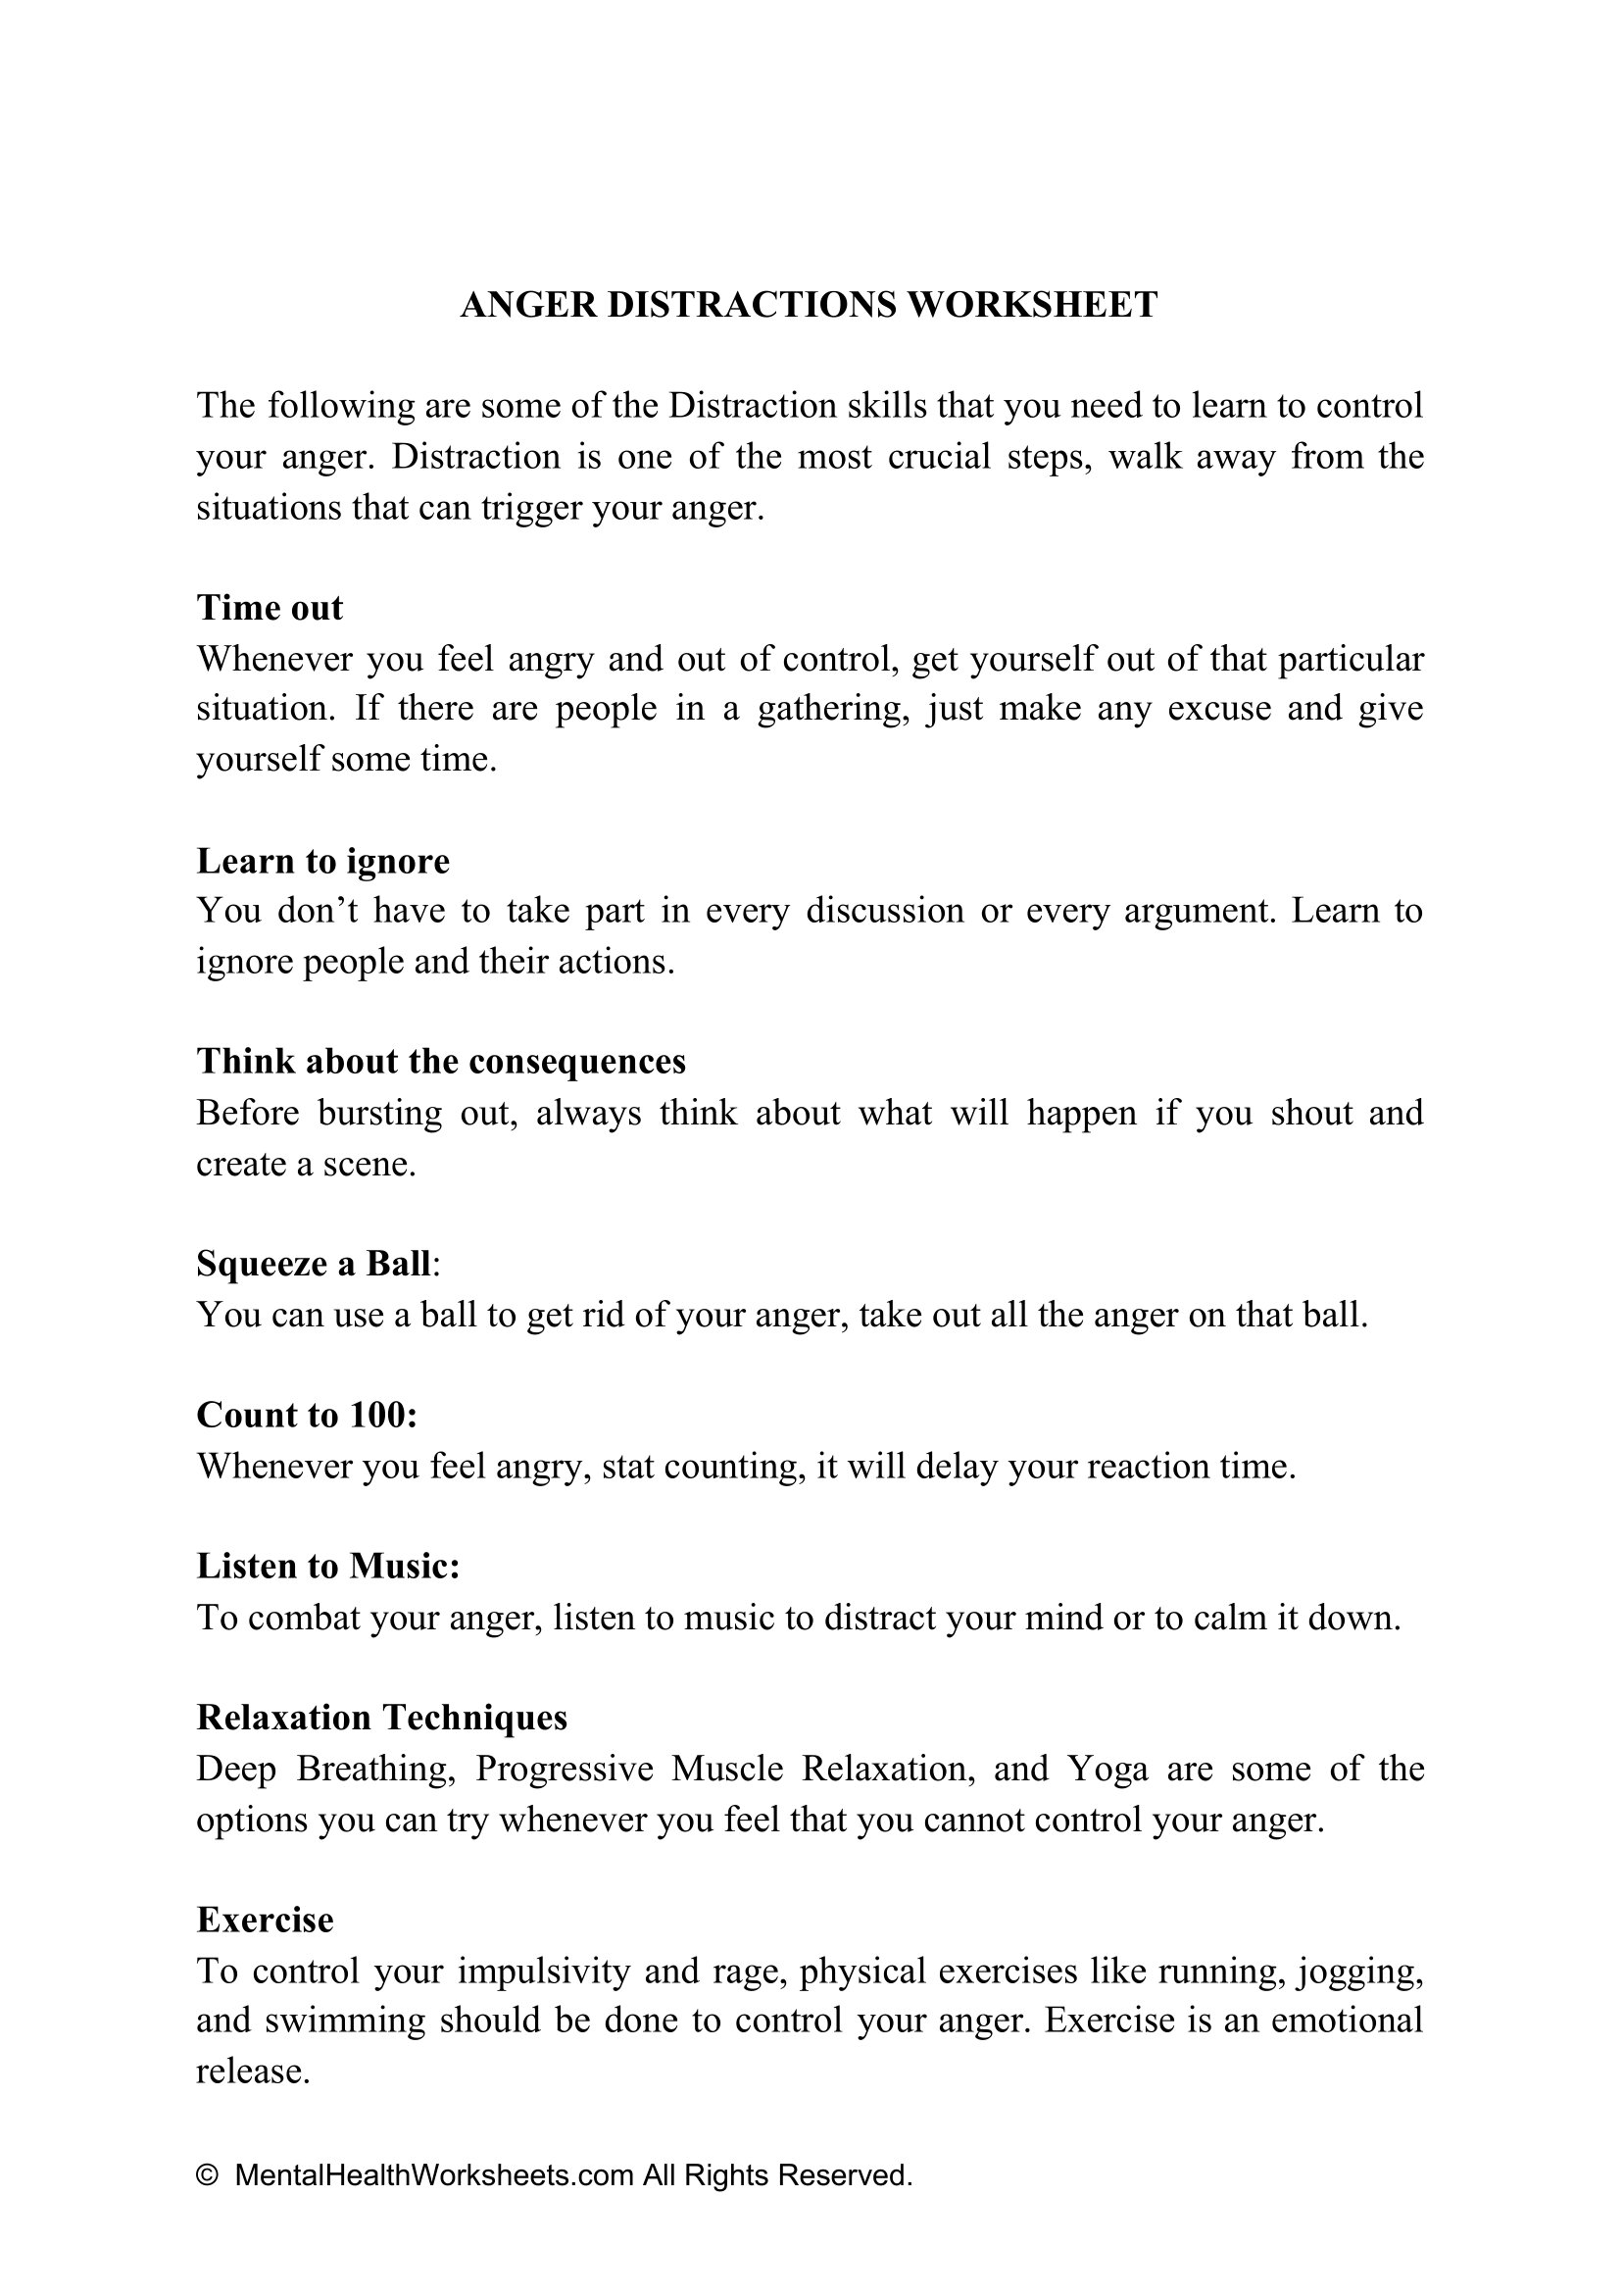 Anger Distractions Worksheet